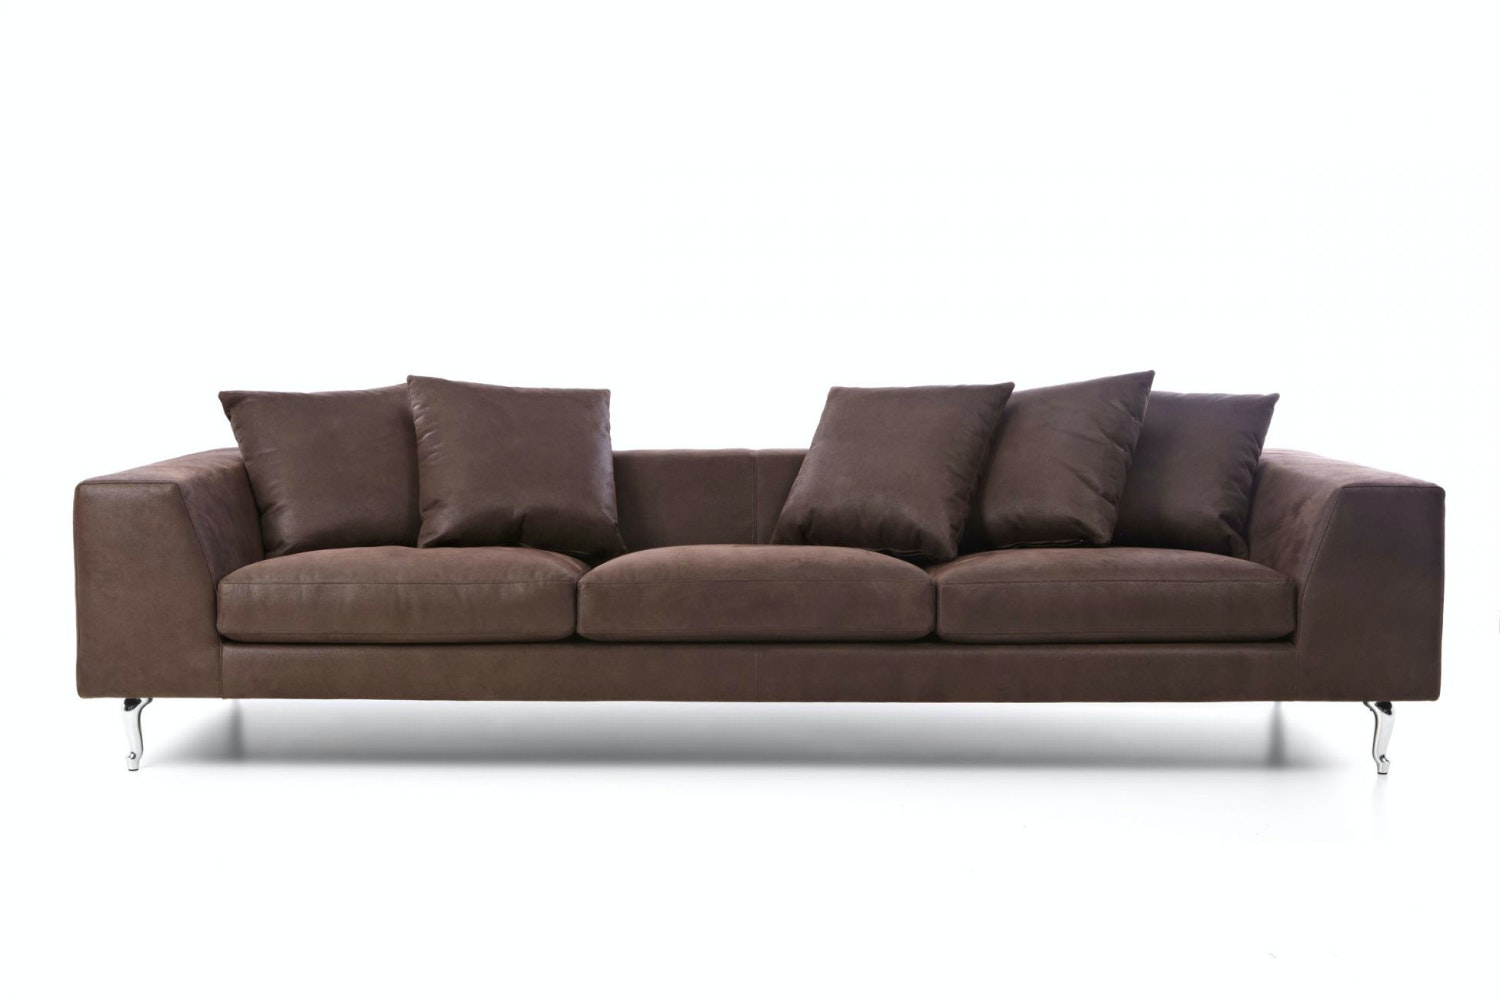 ZLIQ Sofa by Marcel Wanders for Moooi